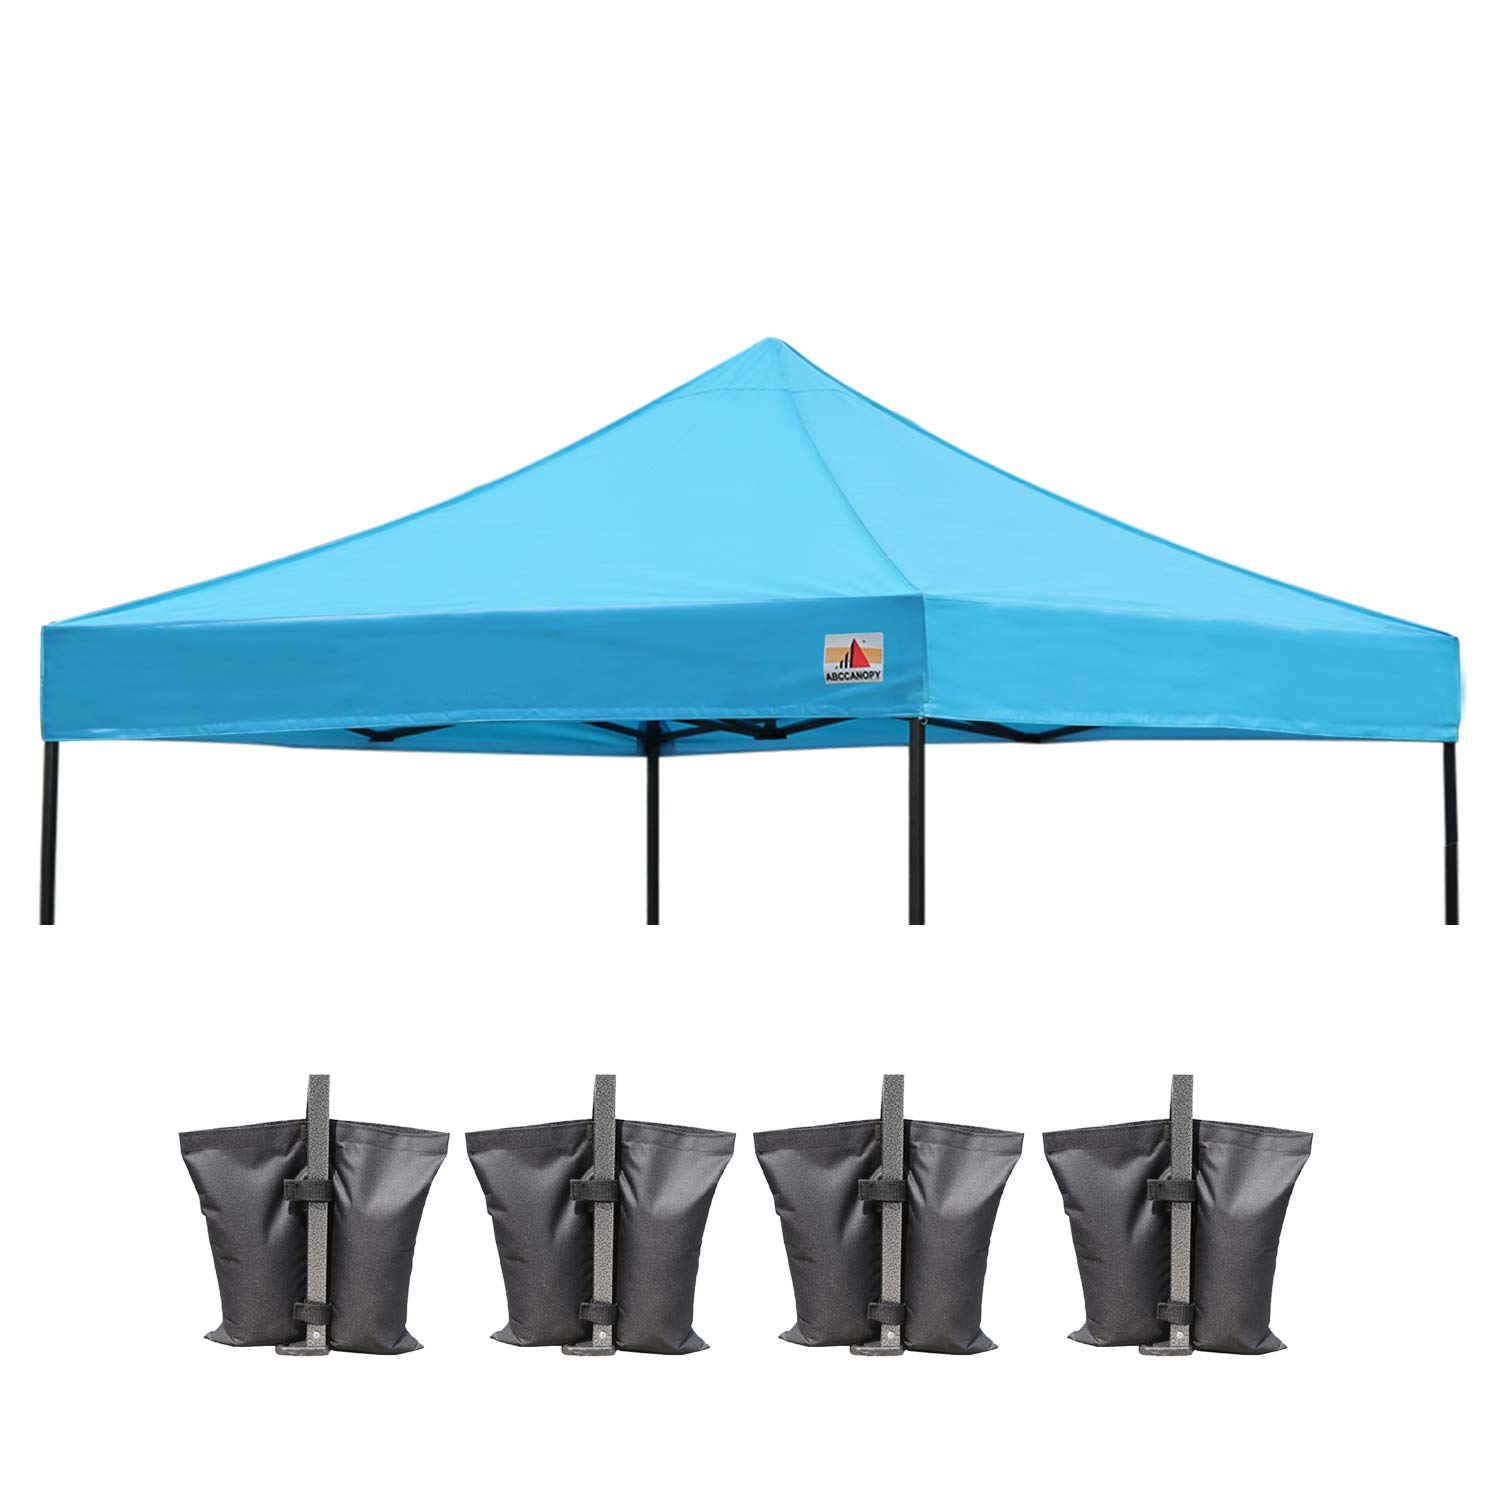 ABCCANOPY Replacement Top Cover 100% Waterproof (18+ Colors) 10x10 Pop Up Canopy Tent Top, Bonus 4 x Weight Bags (Brown) Deluxe